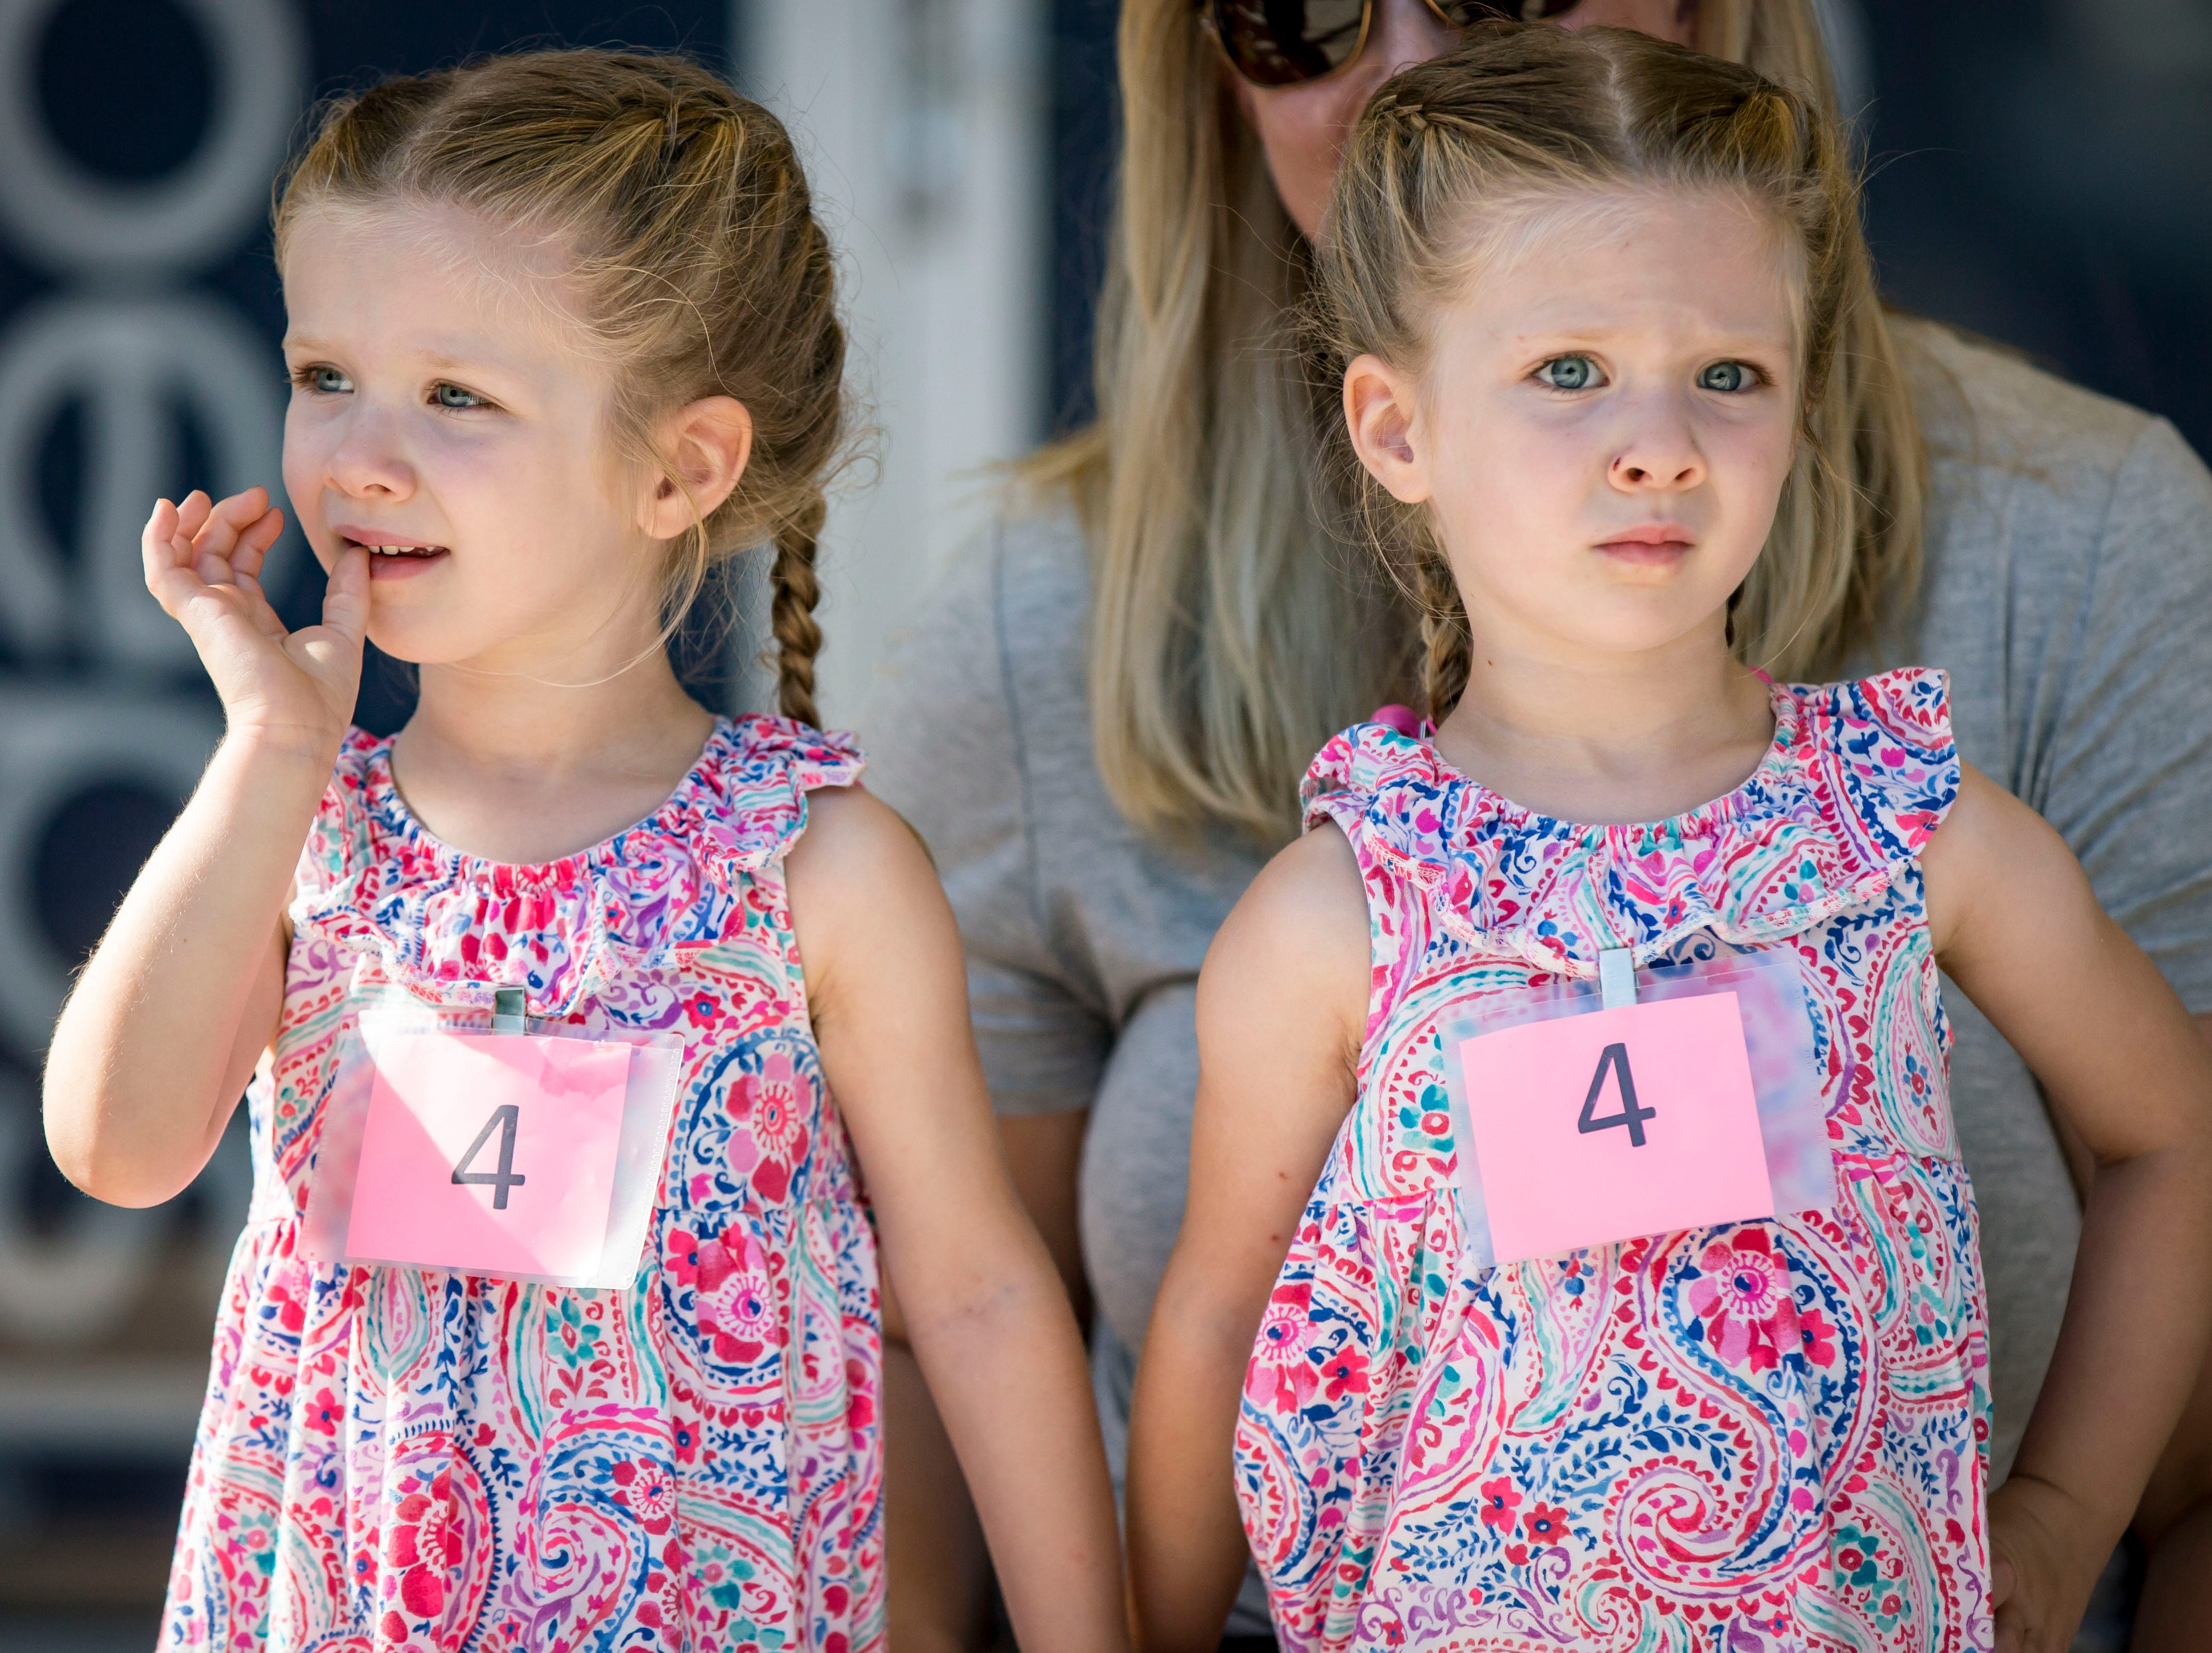 Brynn, left, and Anna Kundel of Granger compete in the three-year-old most alike category during the Twins, Triplets and More Contest on the Anne and Bill Riley Stage at the 2018 Iowa State Fair in Des Moines Thursday, Aug. 9, 2018.